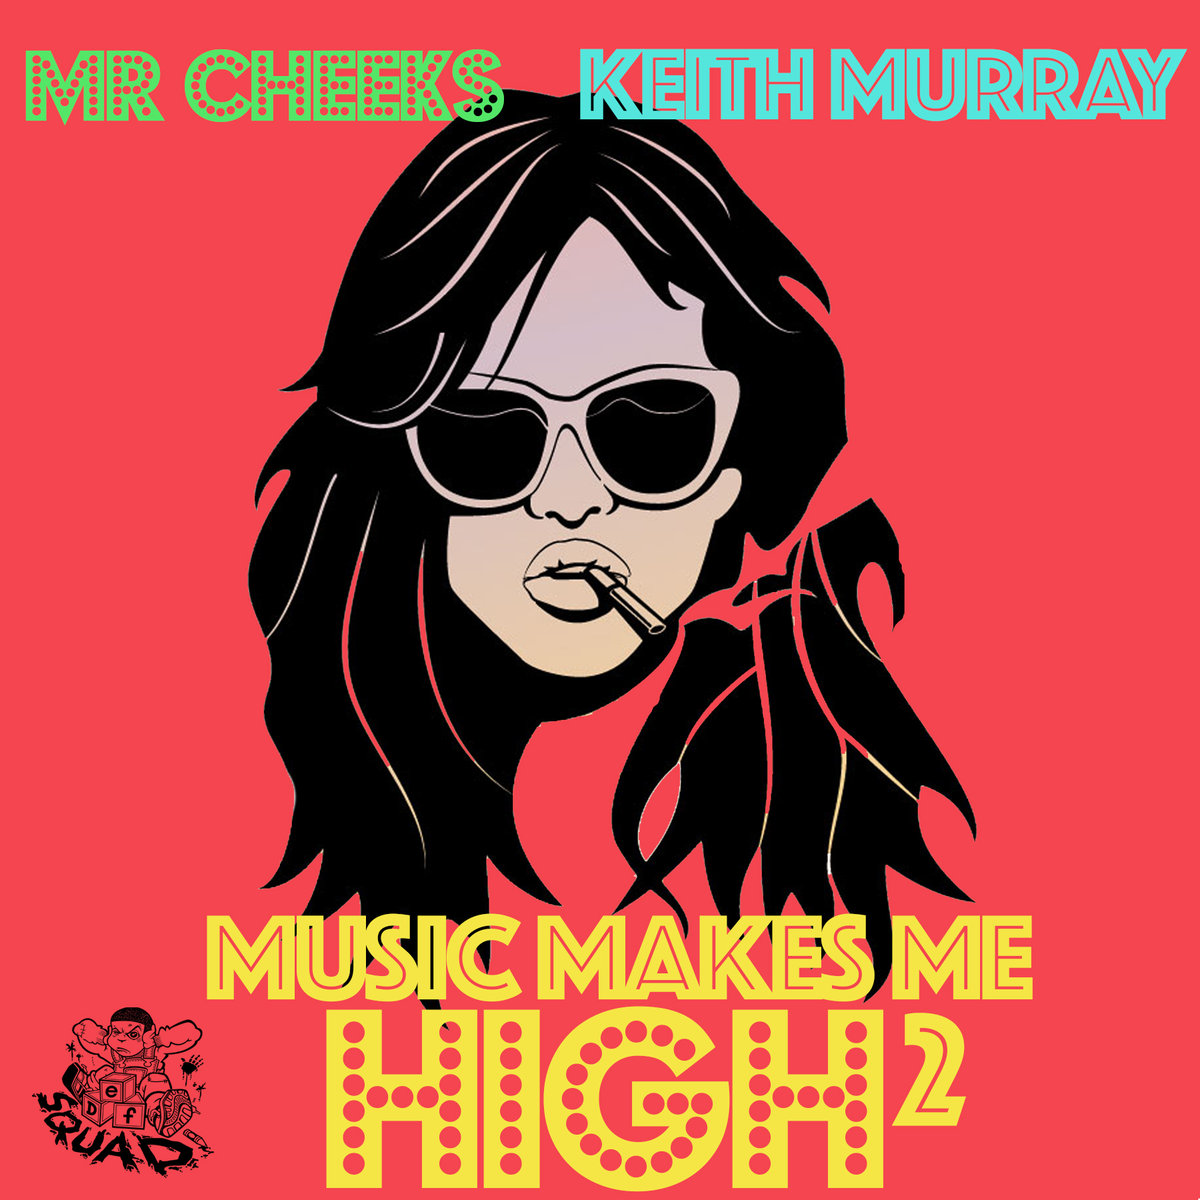 Mr. Cheeks — «Music Makes Me High 2» (feat. Keith Murray)